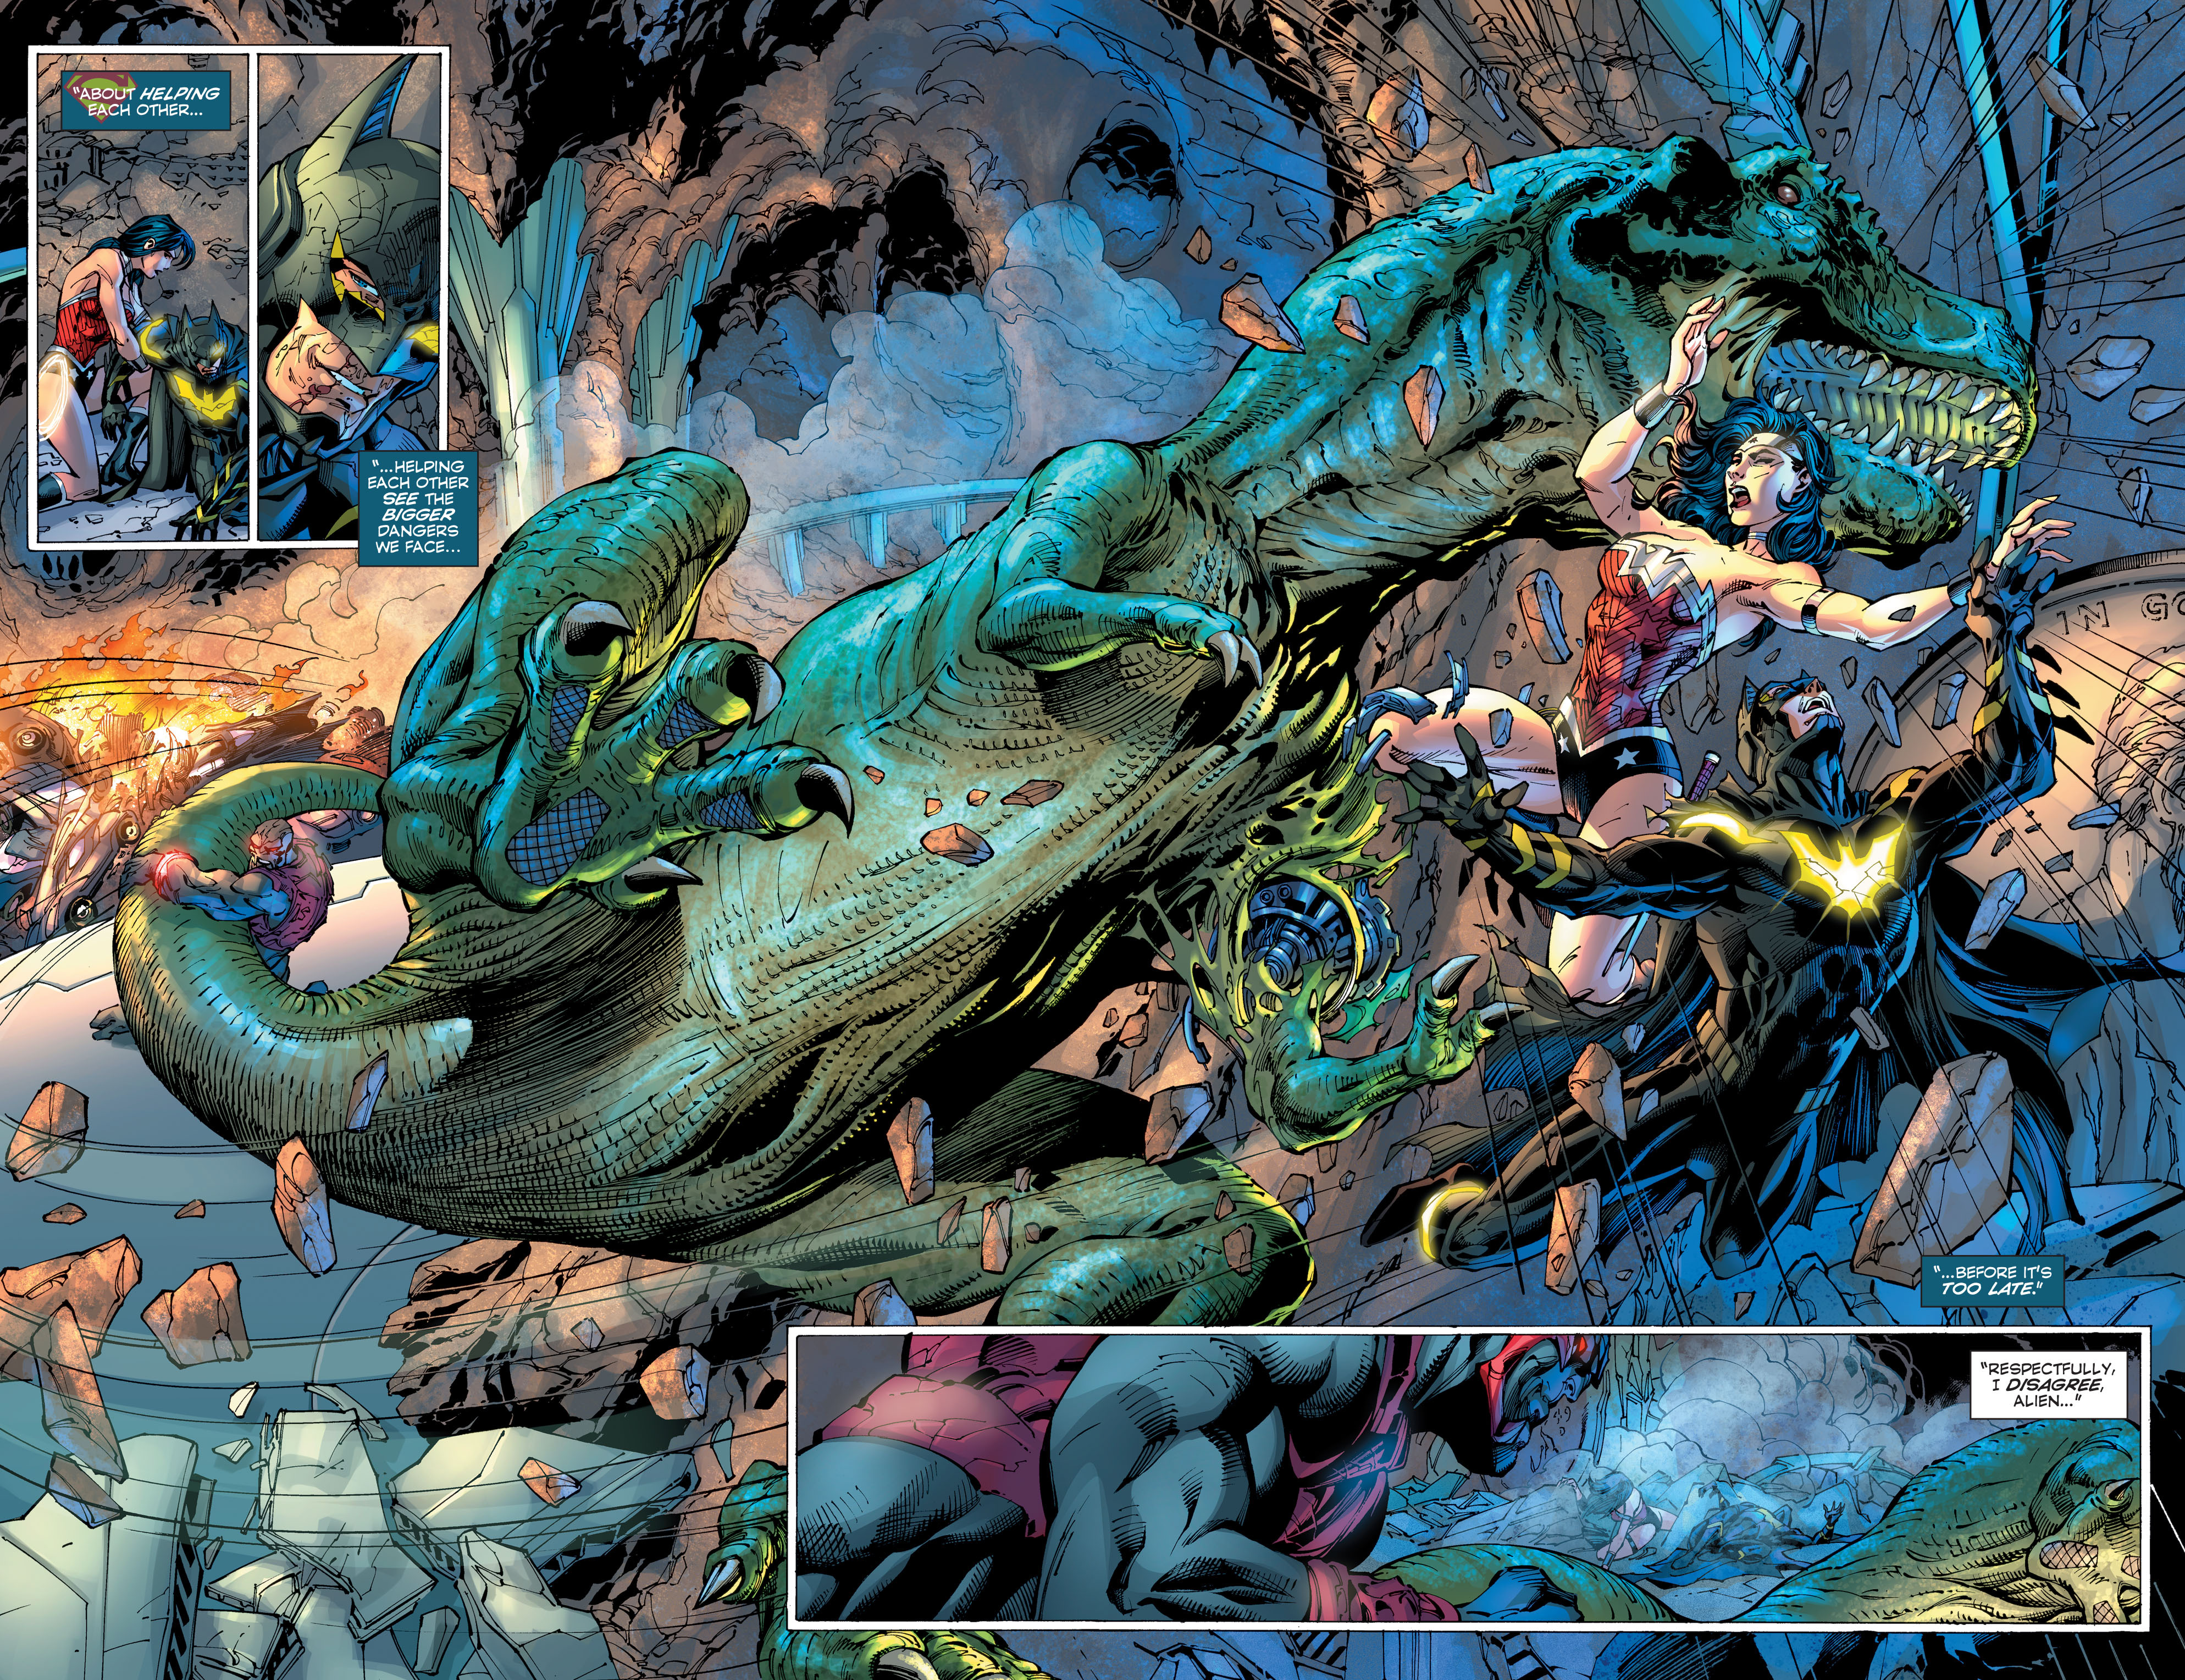 Superman Unchained #7. The T. Rex goes extinct? Or will we see his snarling robot face again?